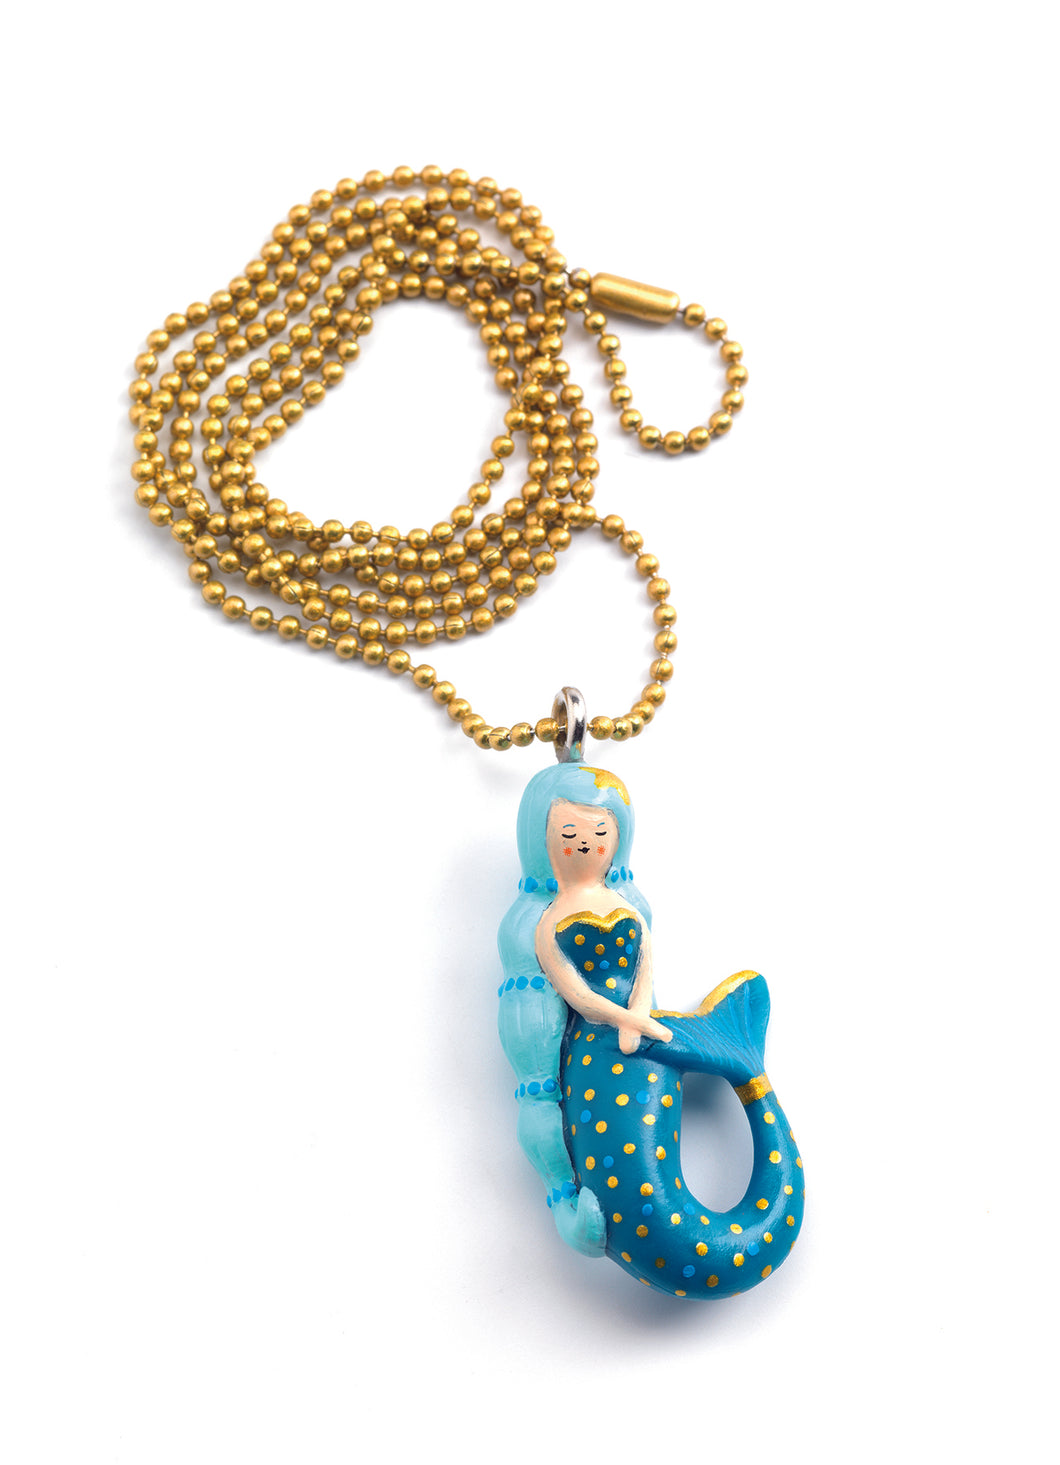 Mermaid lovely charm necklace